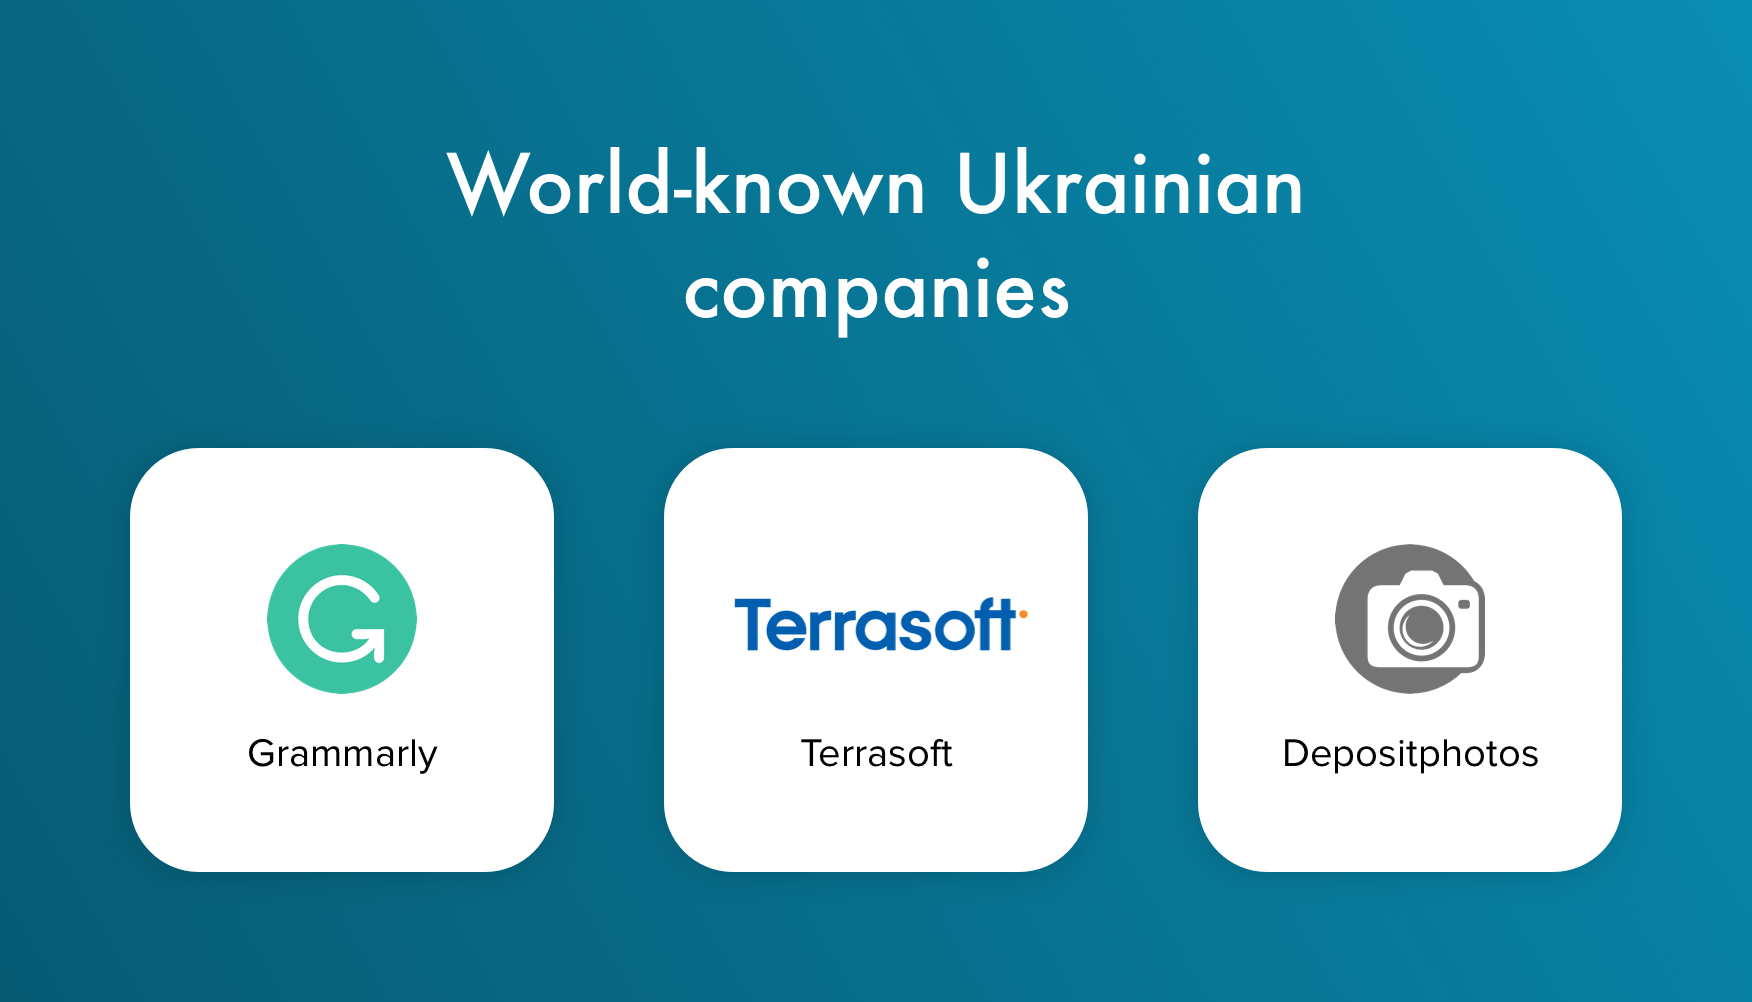 World-known Ukrainian companies